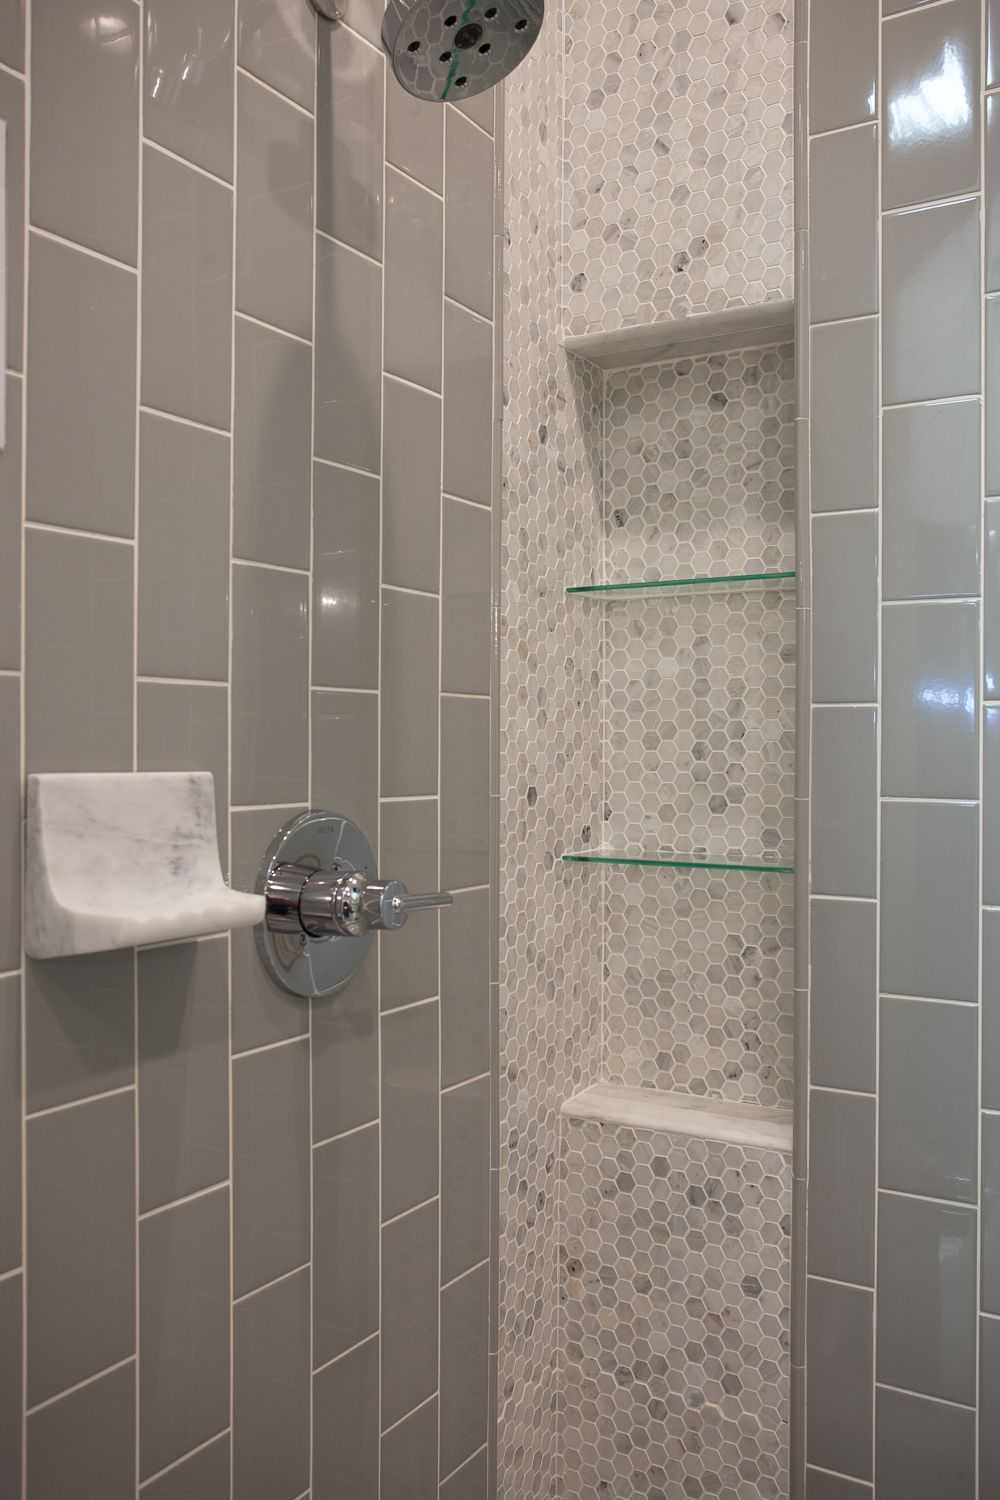 hex tile bathroom hex marble mosaic and subway tile mosaicmonday bathroom 13109 | a04f91f9512d83a0add39d634d28782e